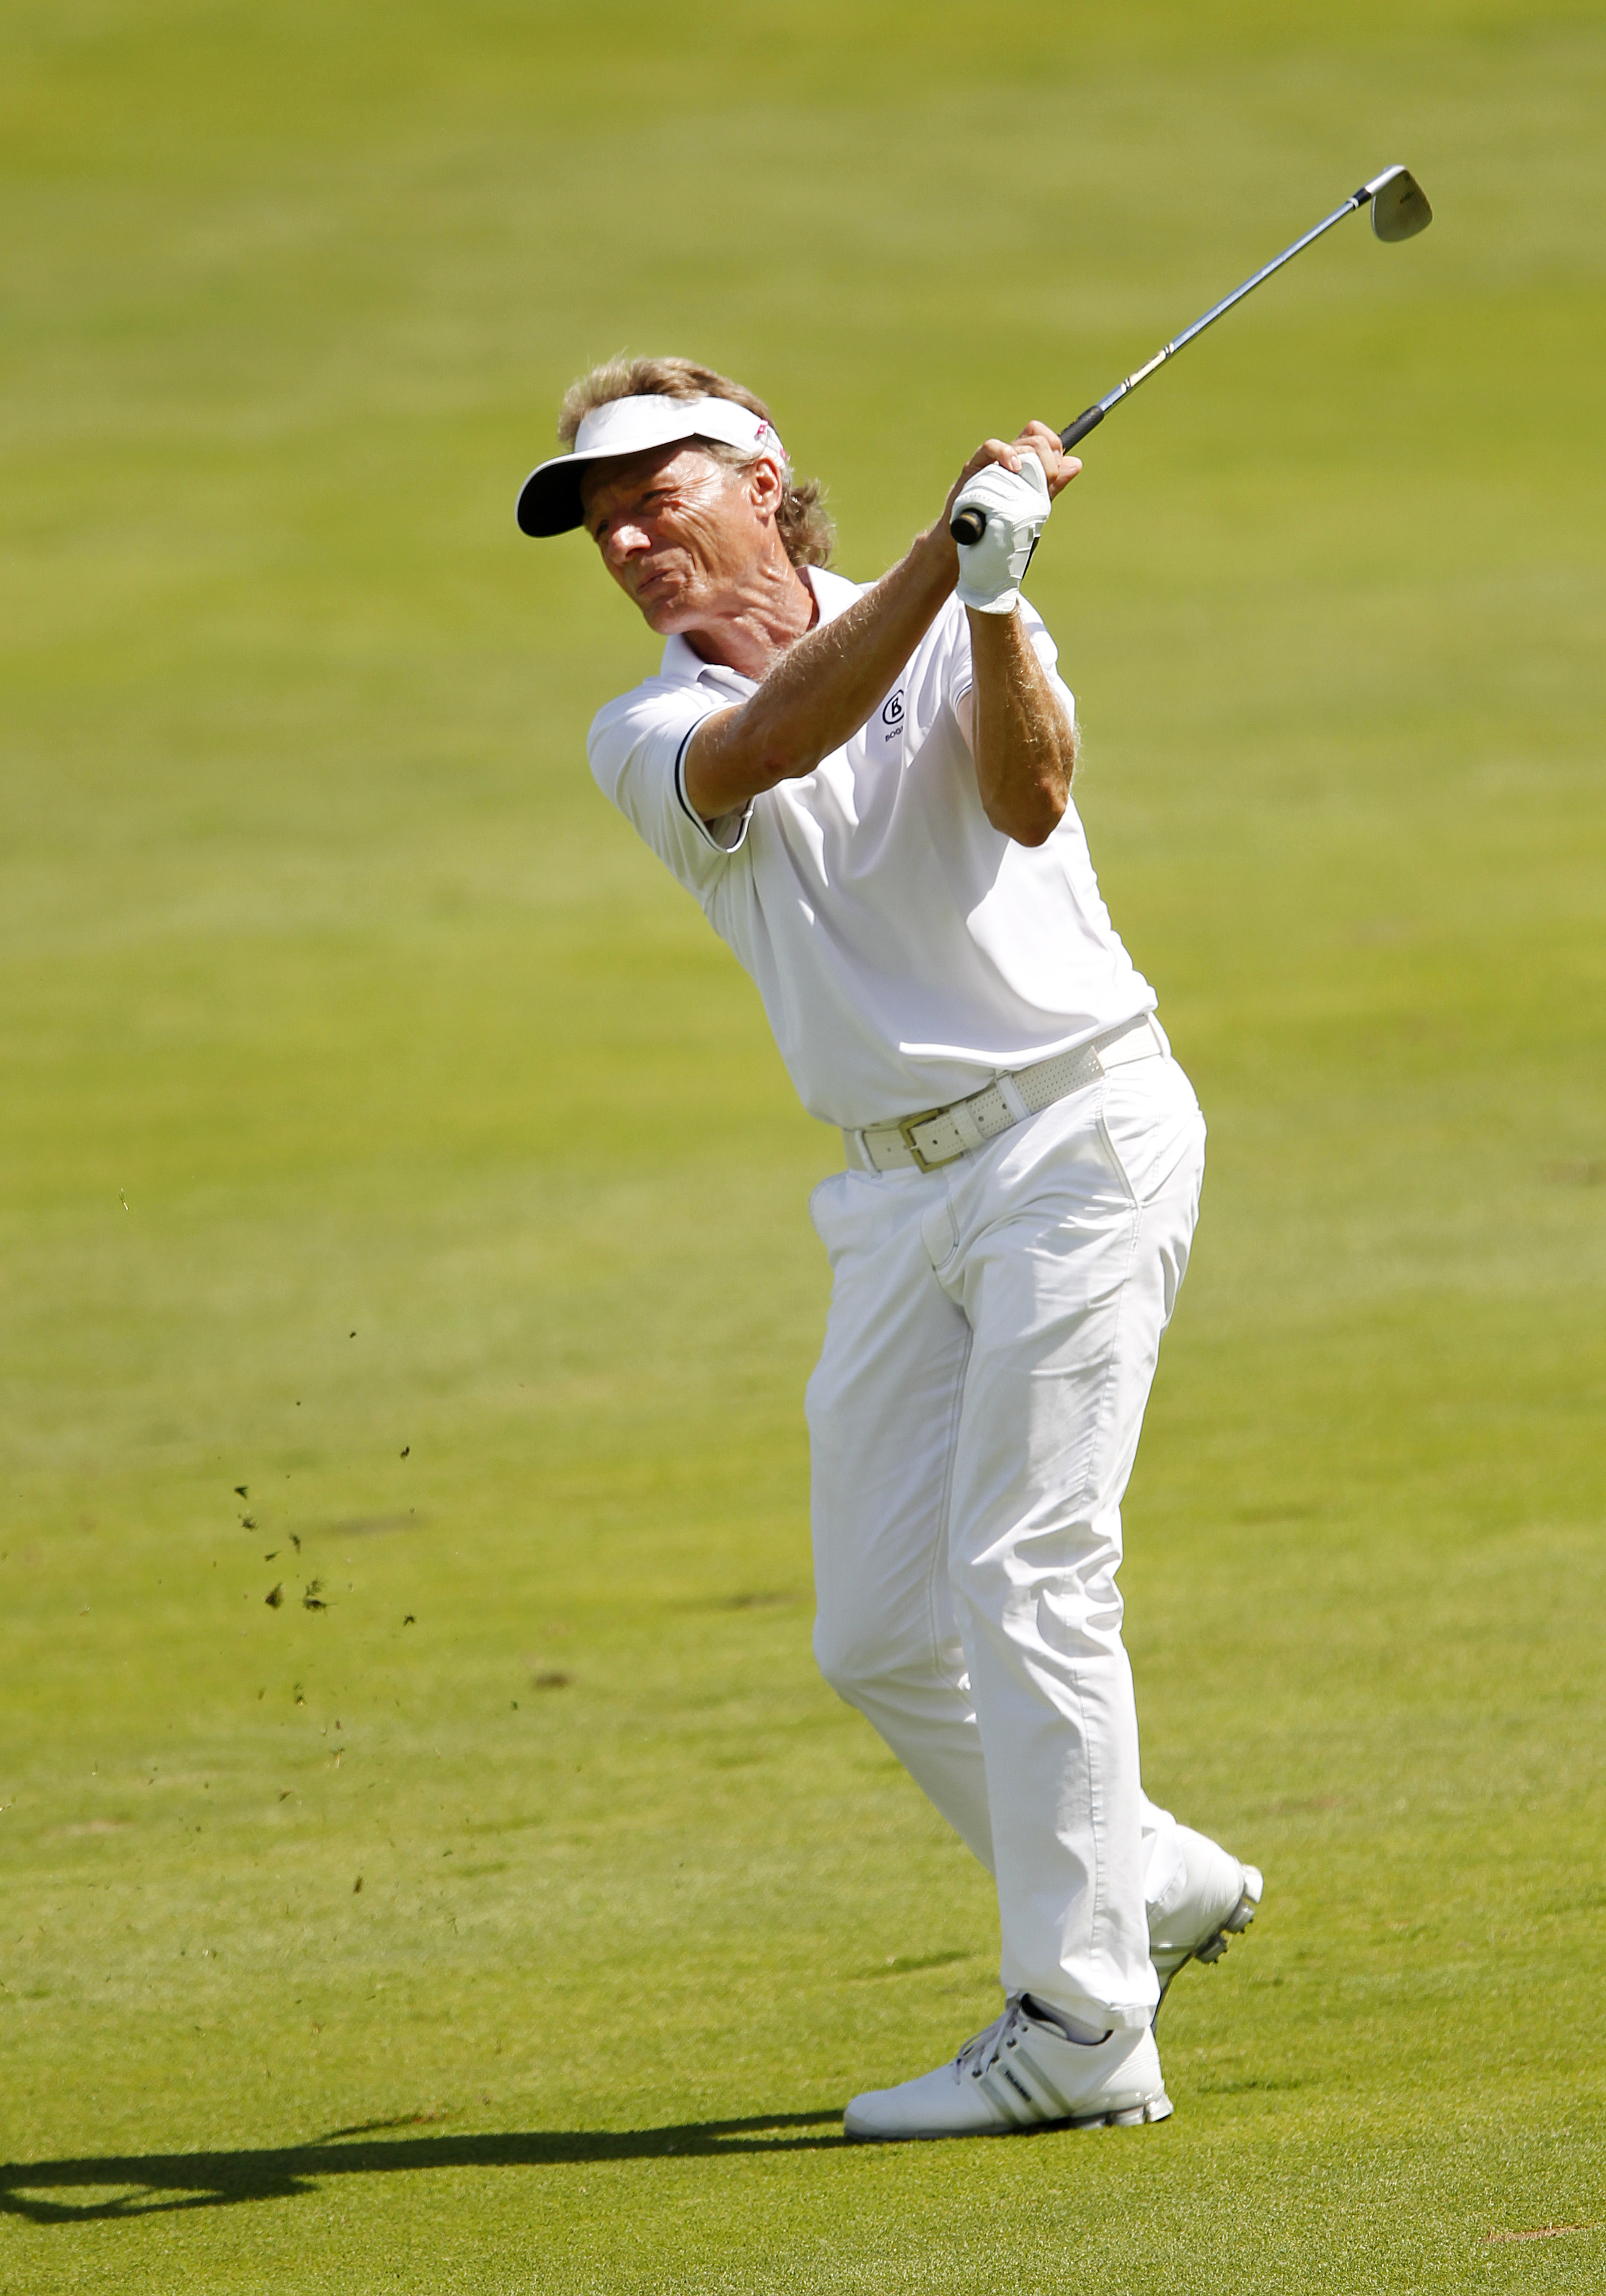 Bernhard Langer hits on the 12th hole during the final round of the 3M Championship golf tournament in Blaine, Minn., Sunday, Aug. 7, 2016. (AP Photo/Andy Clayton-King)